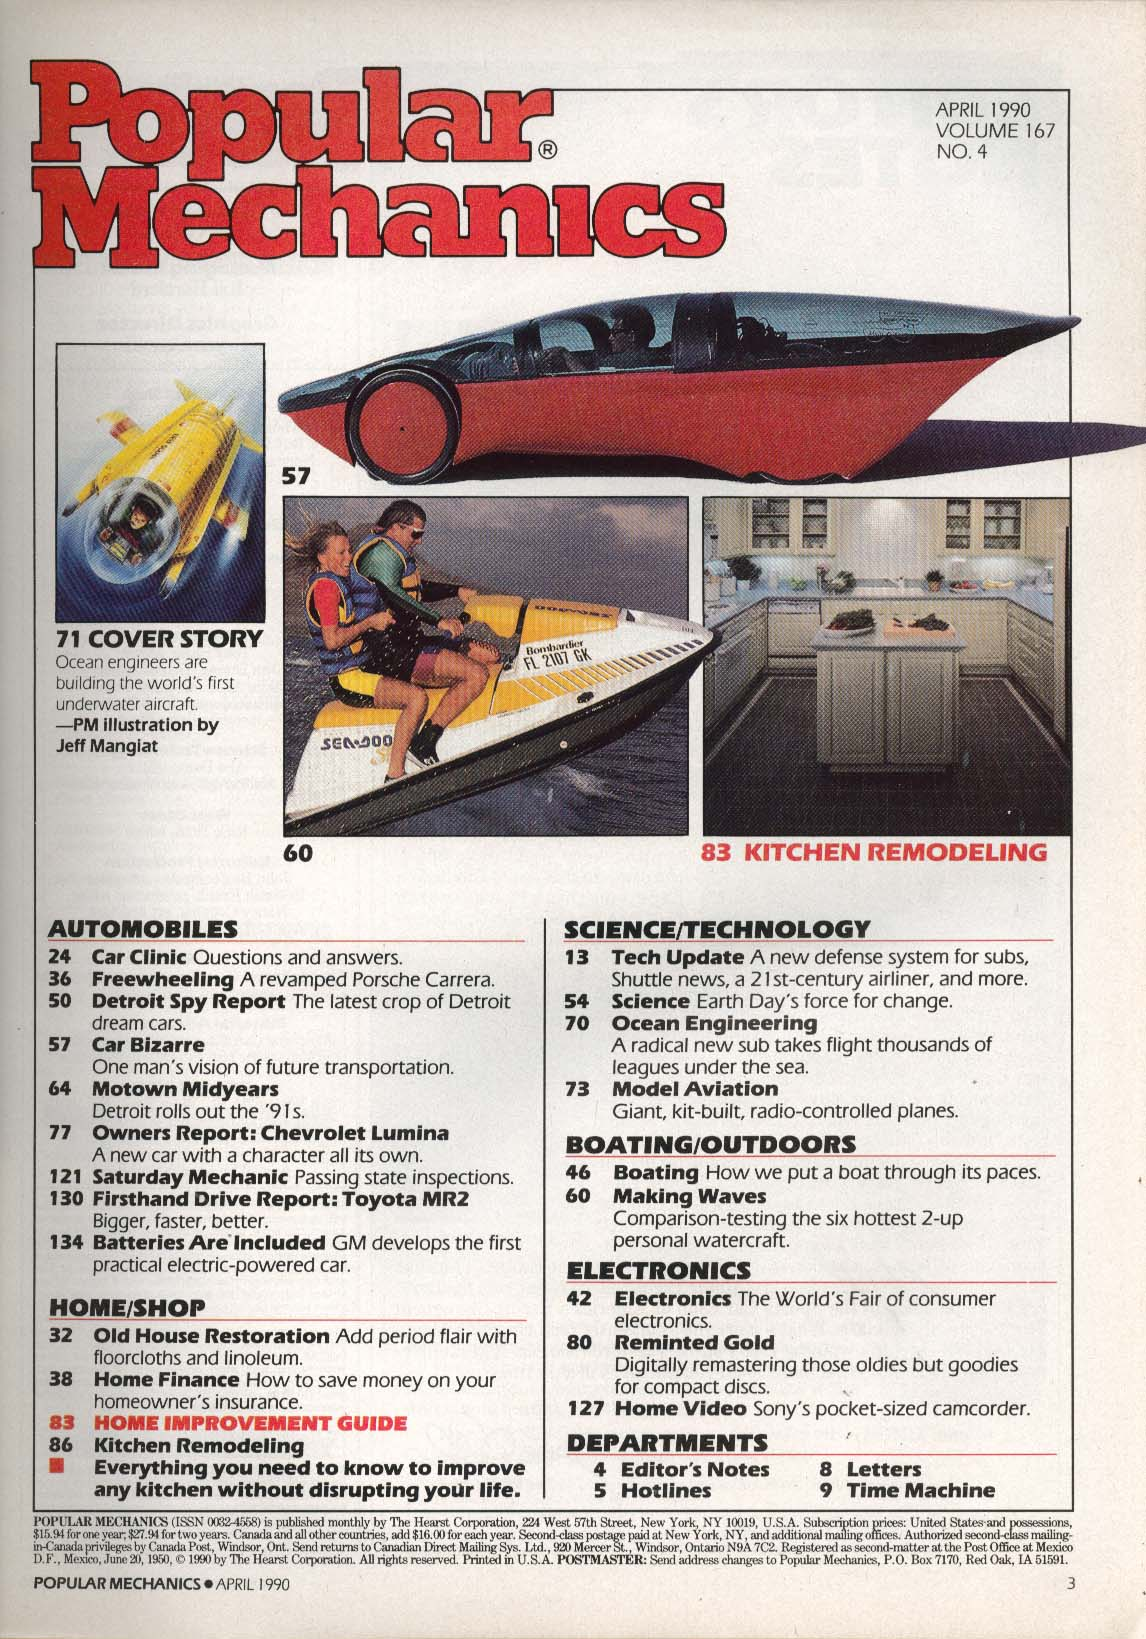 Image for POPULAR MECHANICS Jet-Ski Toyota MR2 Porsche Carrera Chevrolet Lumina ++ 4 1990